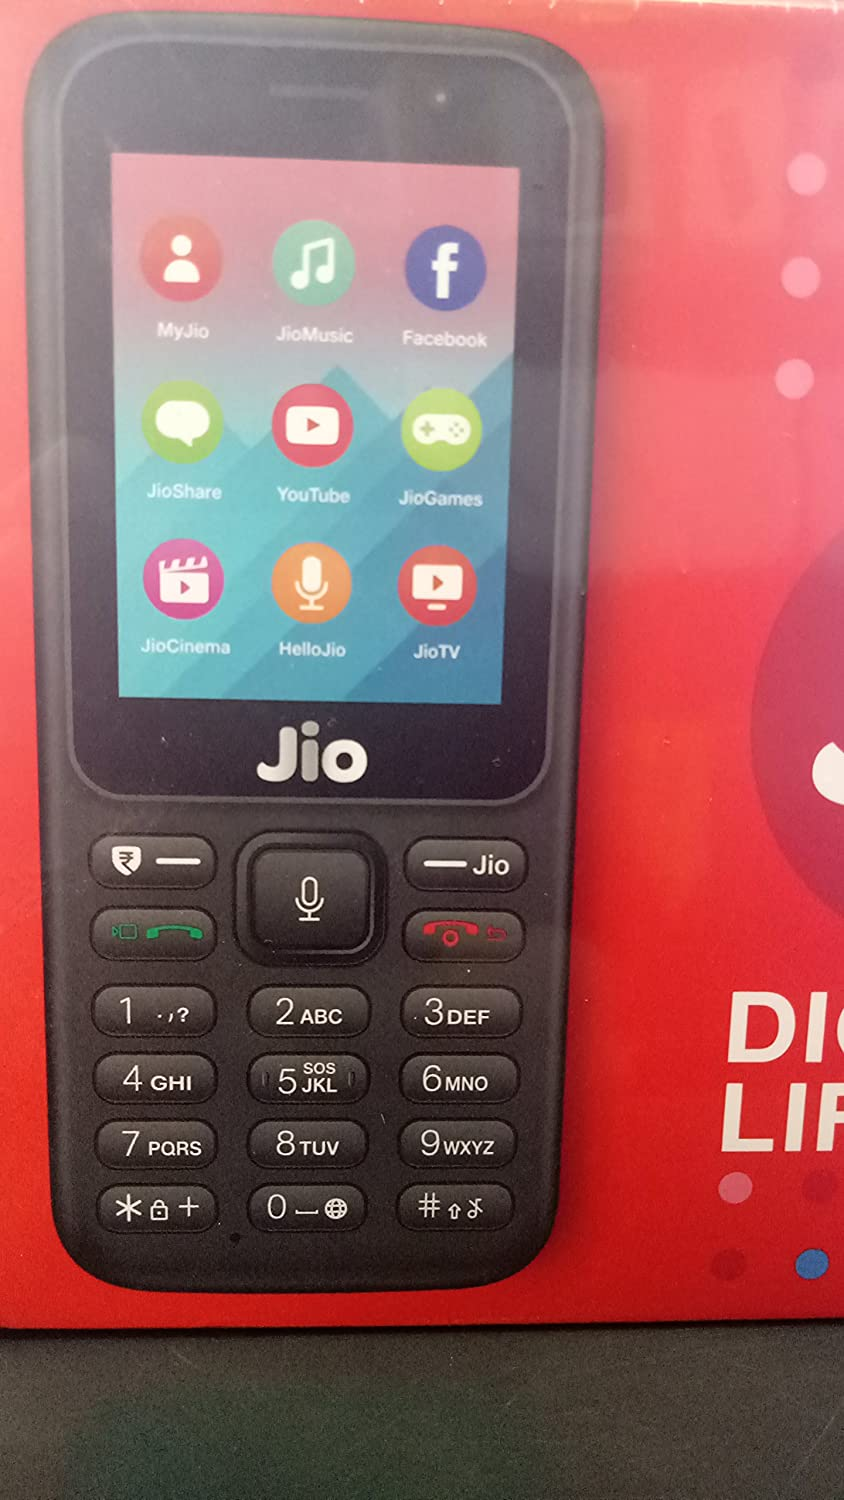 jio phone, jio, mobile, amazon, travel checklist, the indian rover